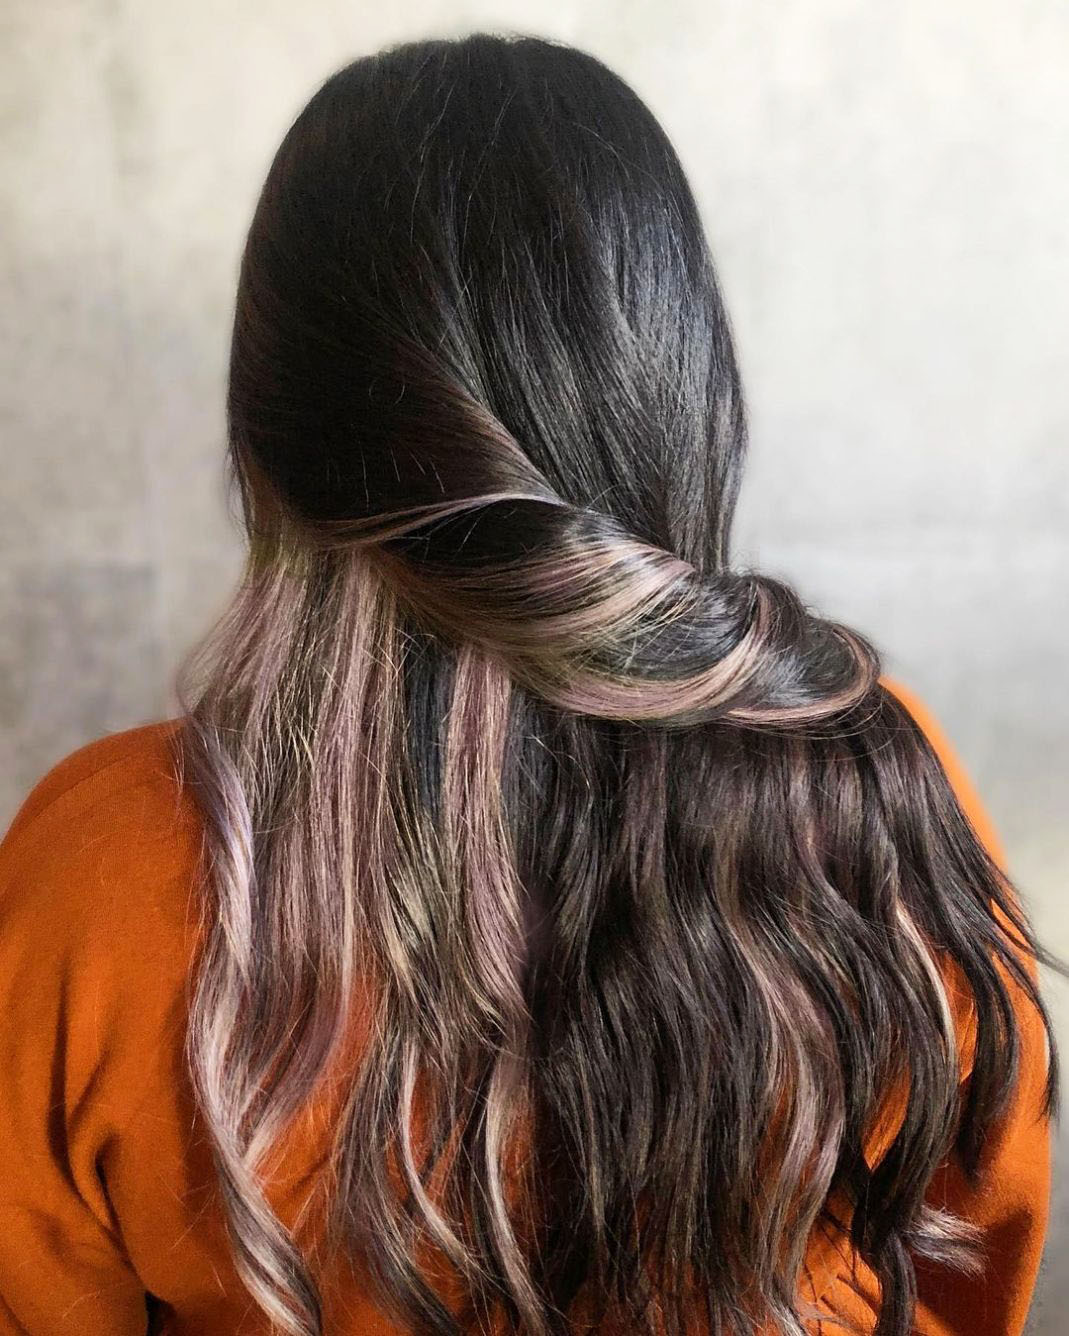 Hairstyles Winter 2020 ideas from hair stylists 5 7